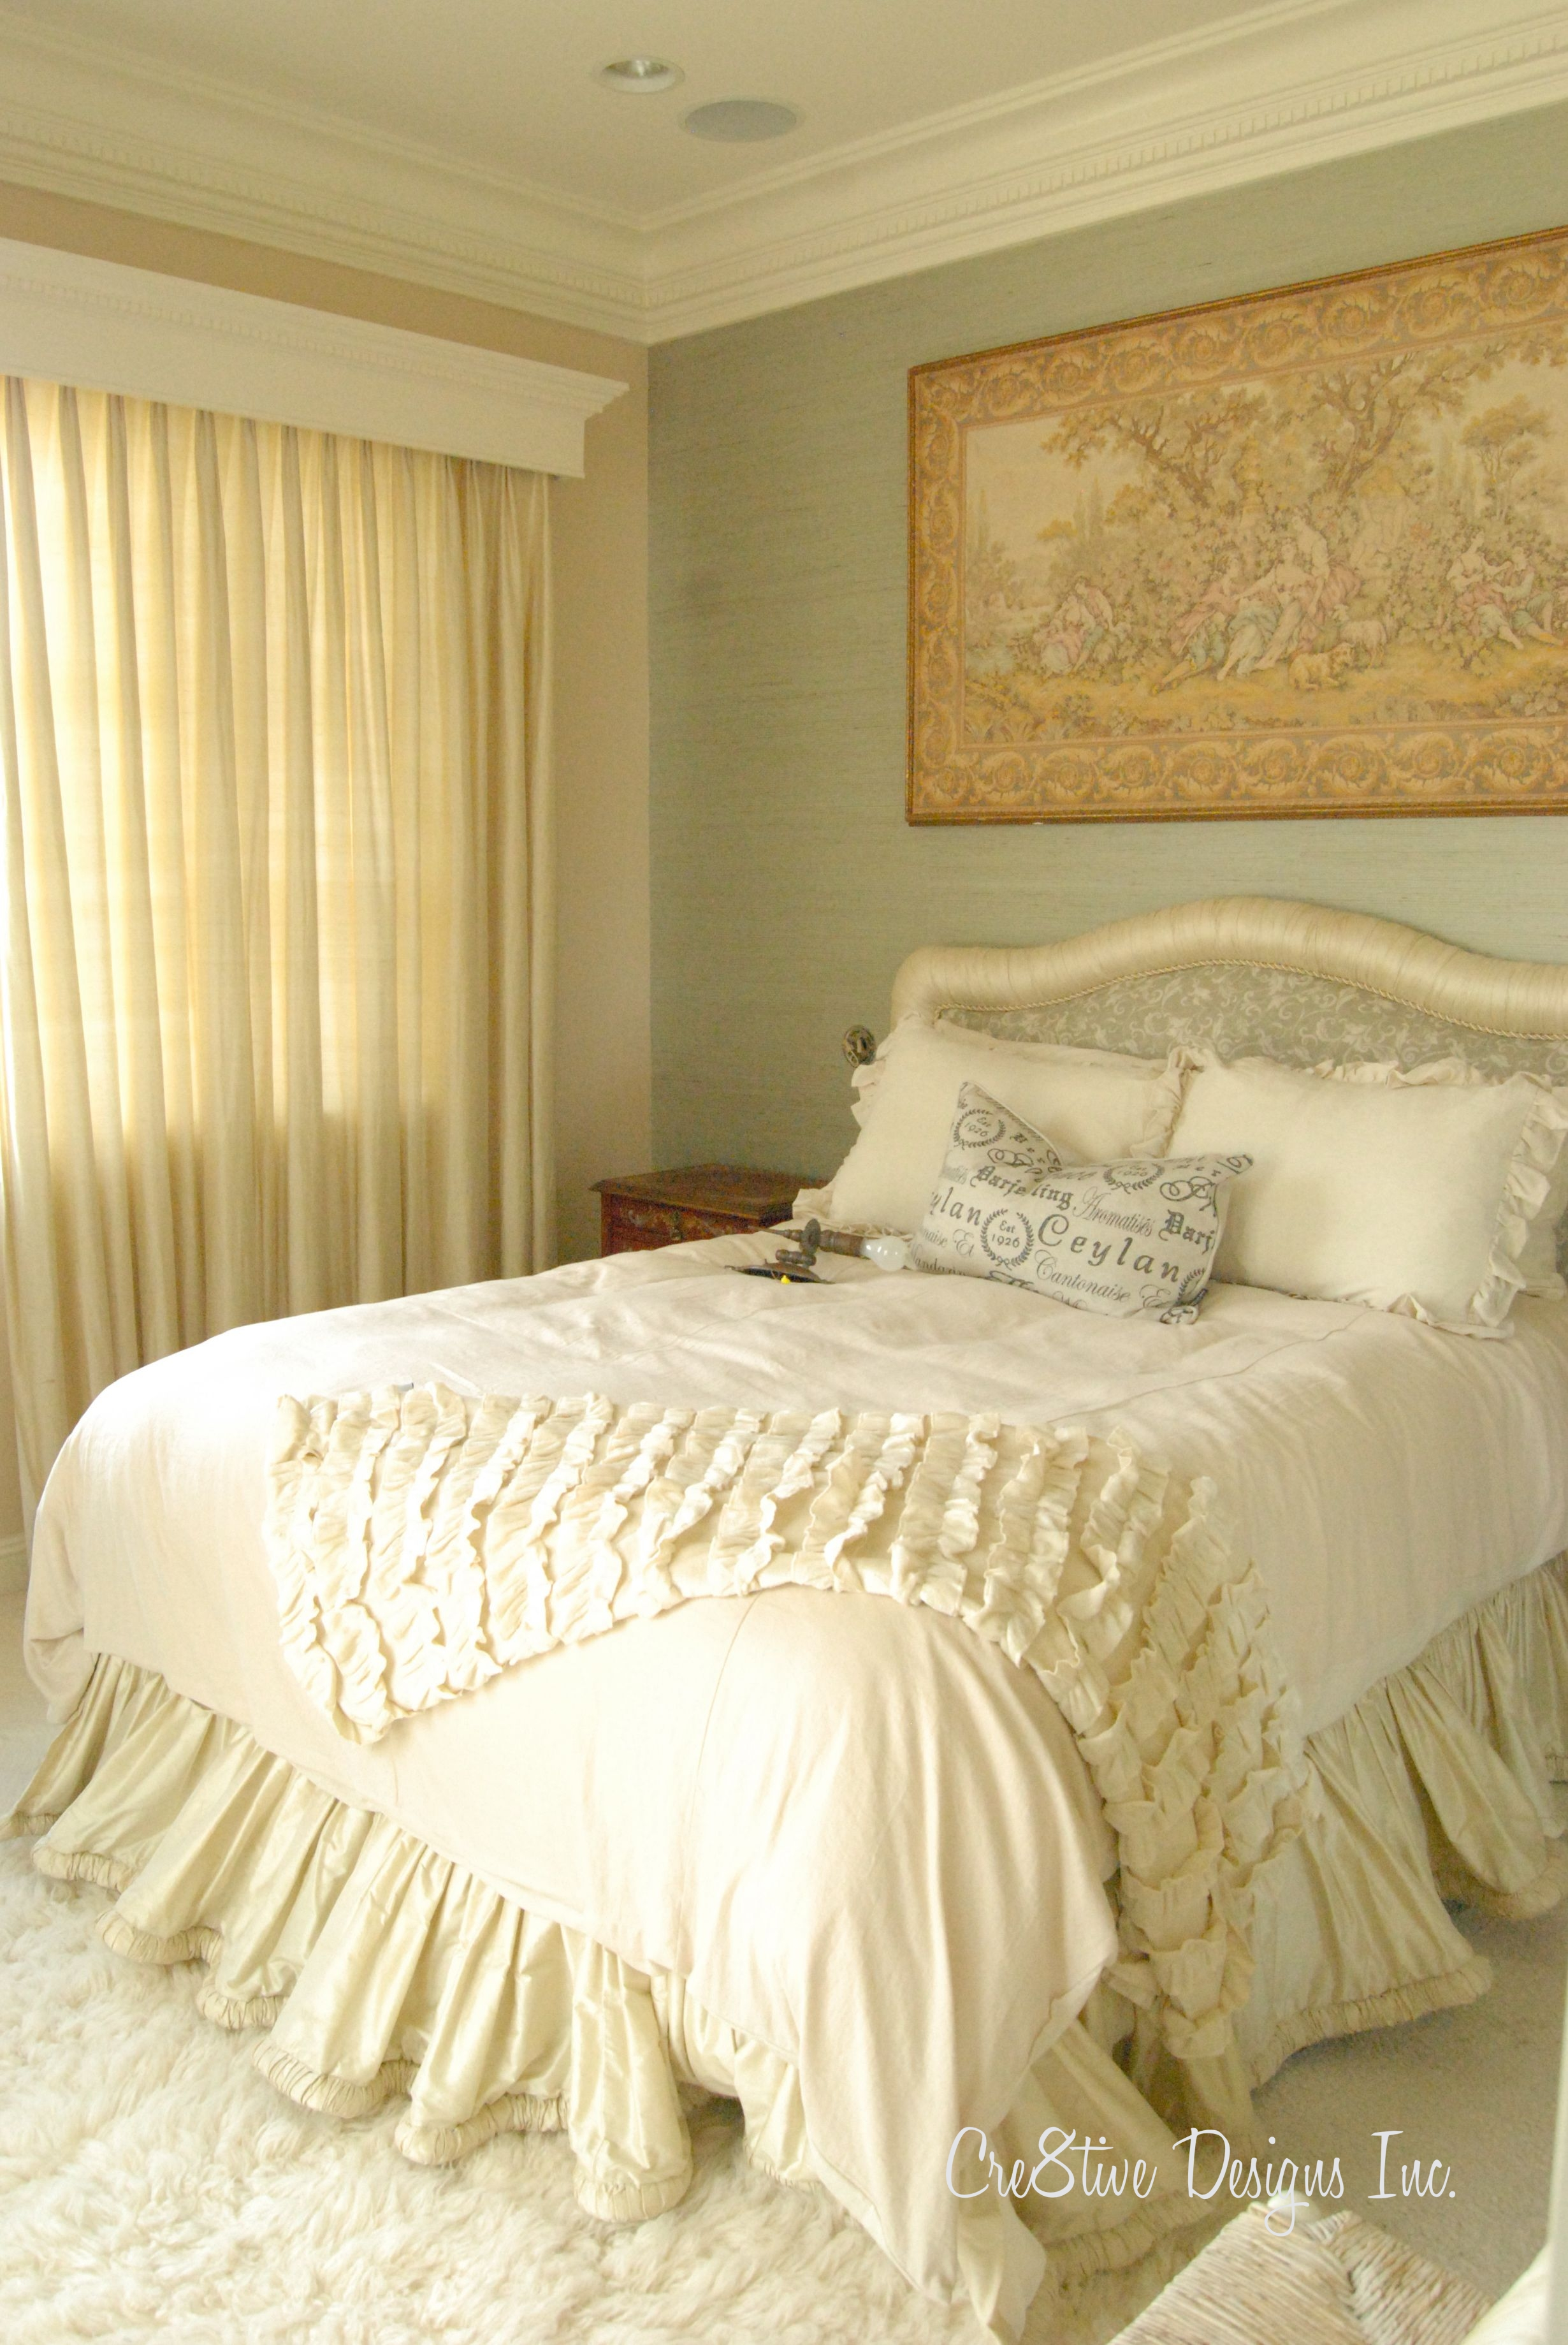 pretty bed grasscloth wallpaper Bedroom Decor Ideas Pinterest 2460x3678